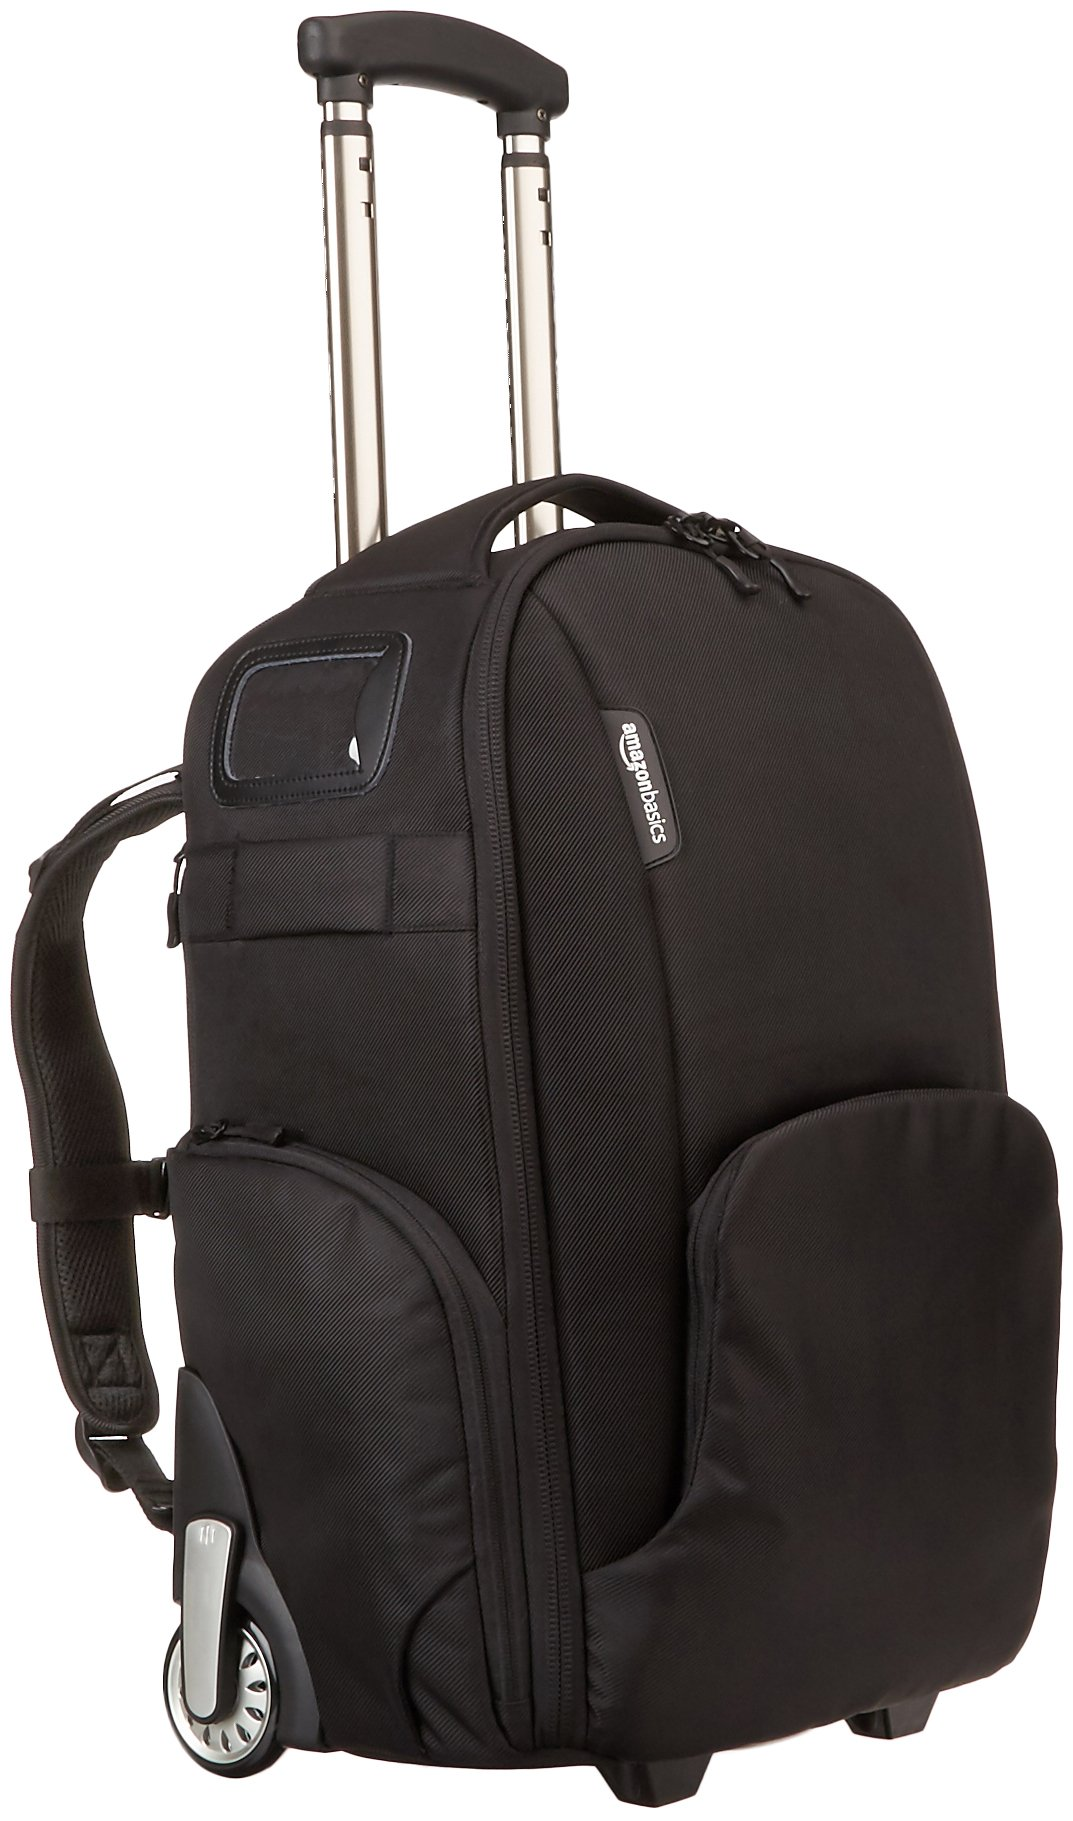 AmazonBasics Convertible Rolling Camera Backpack Bag - 15 x 22 x 10 Inches, Black by AmazonBasics